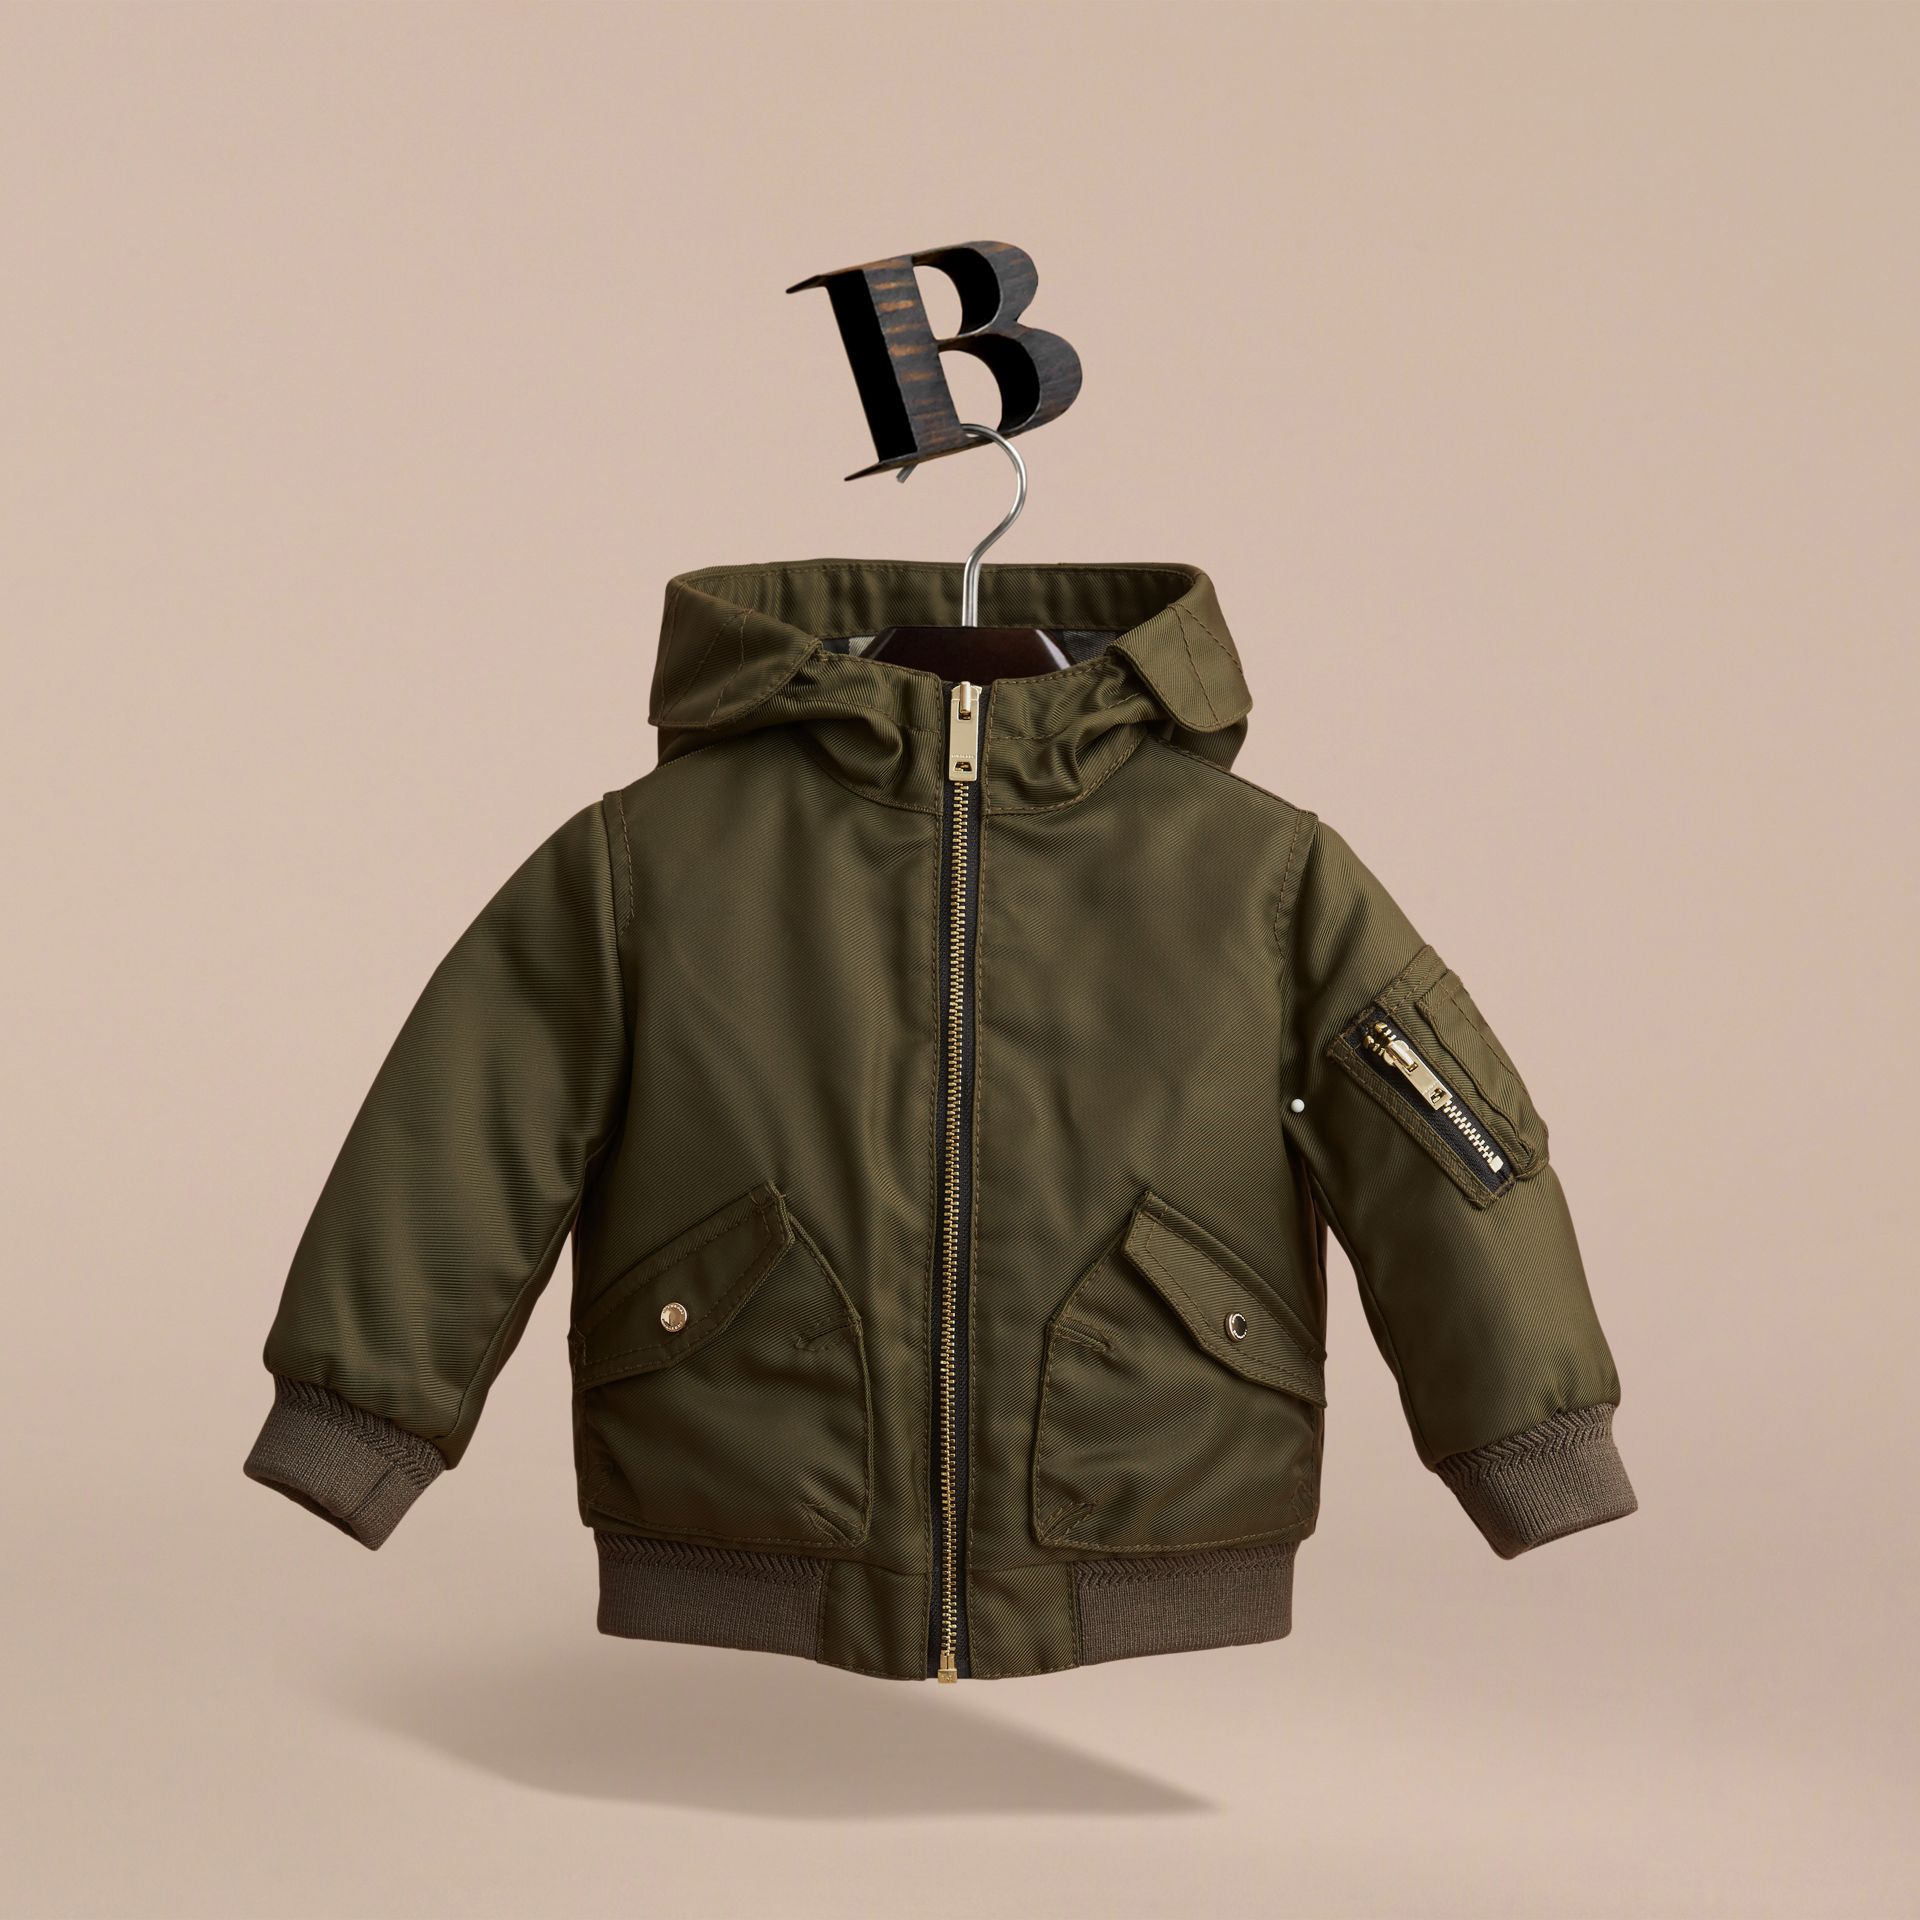 Veste Bomber à capuche en sergé technique | Burberry - photo de la galerie 3